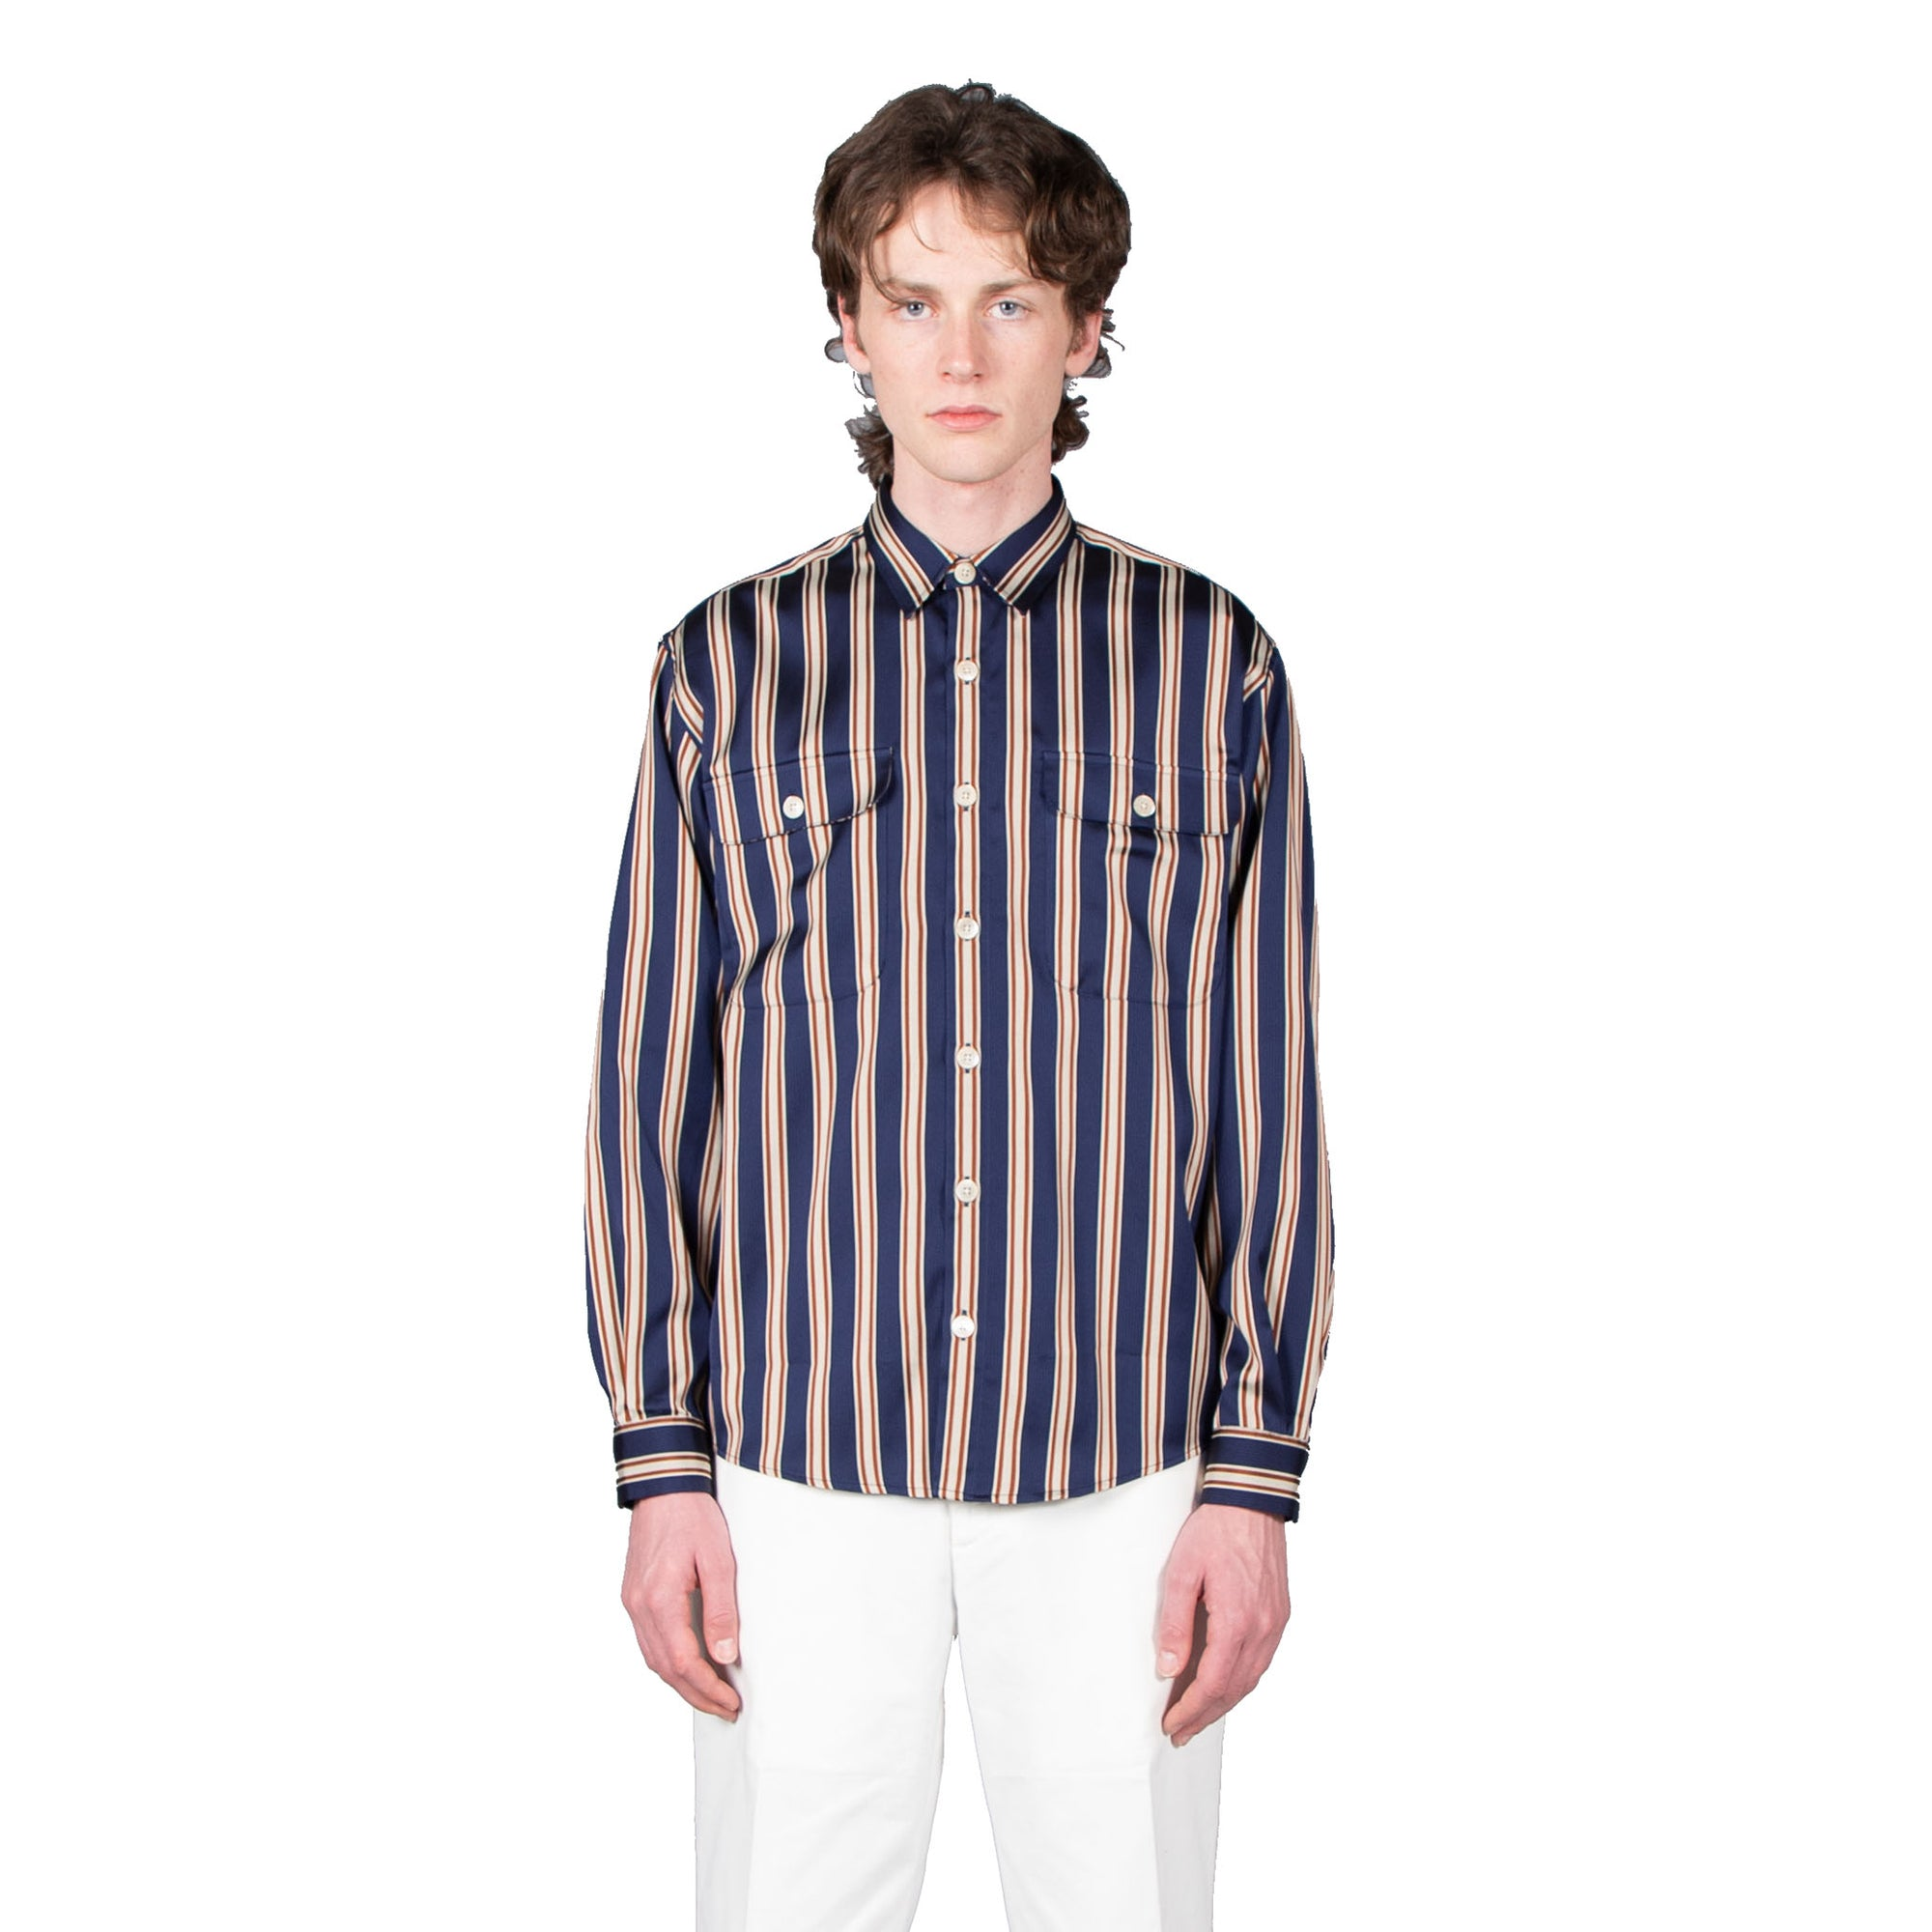 Shop Schnayderman's shirt online boxy stripe navy rust sand